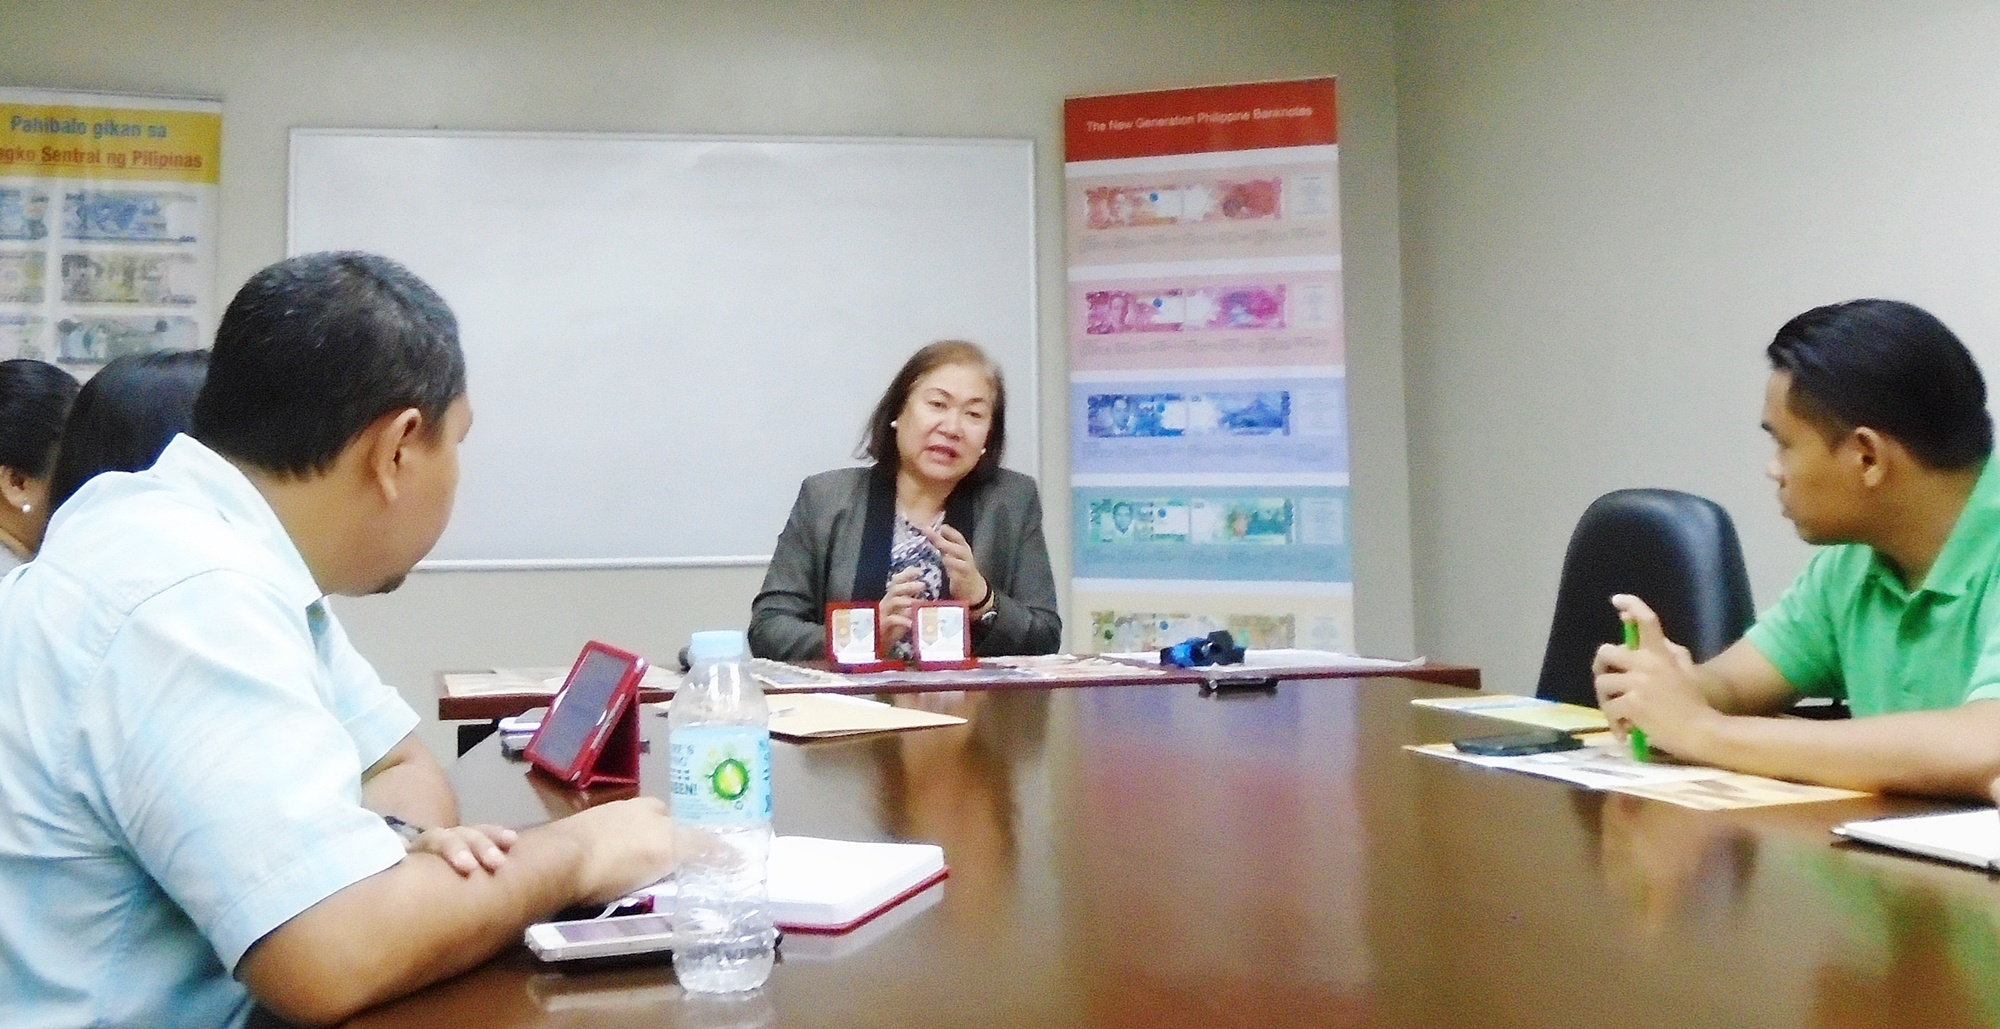 BSP Explains Why PH Bills Should be Treated With TLC